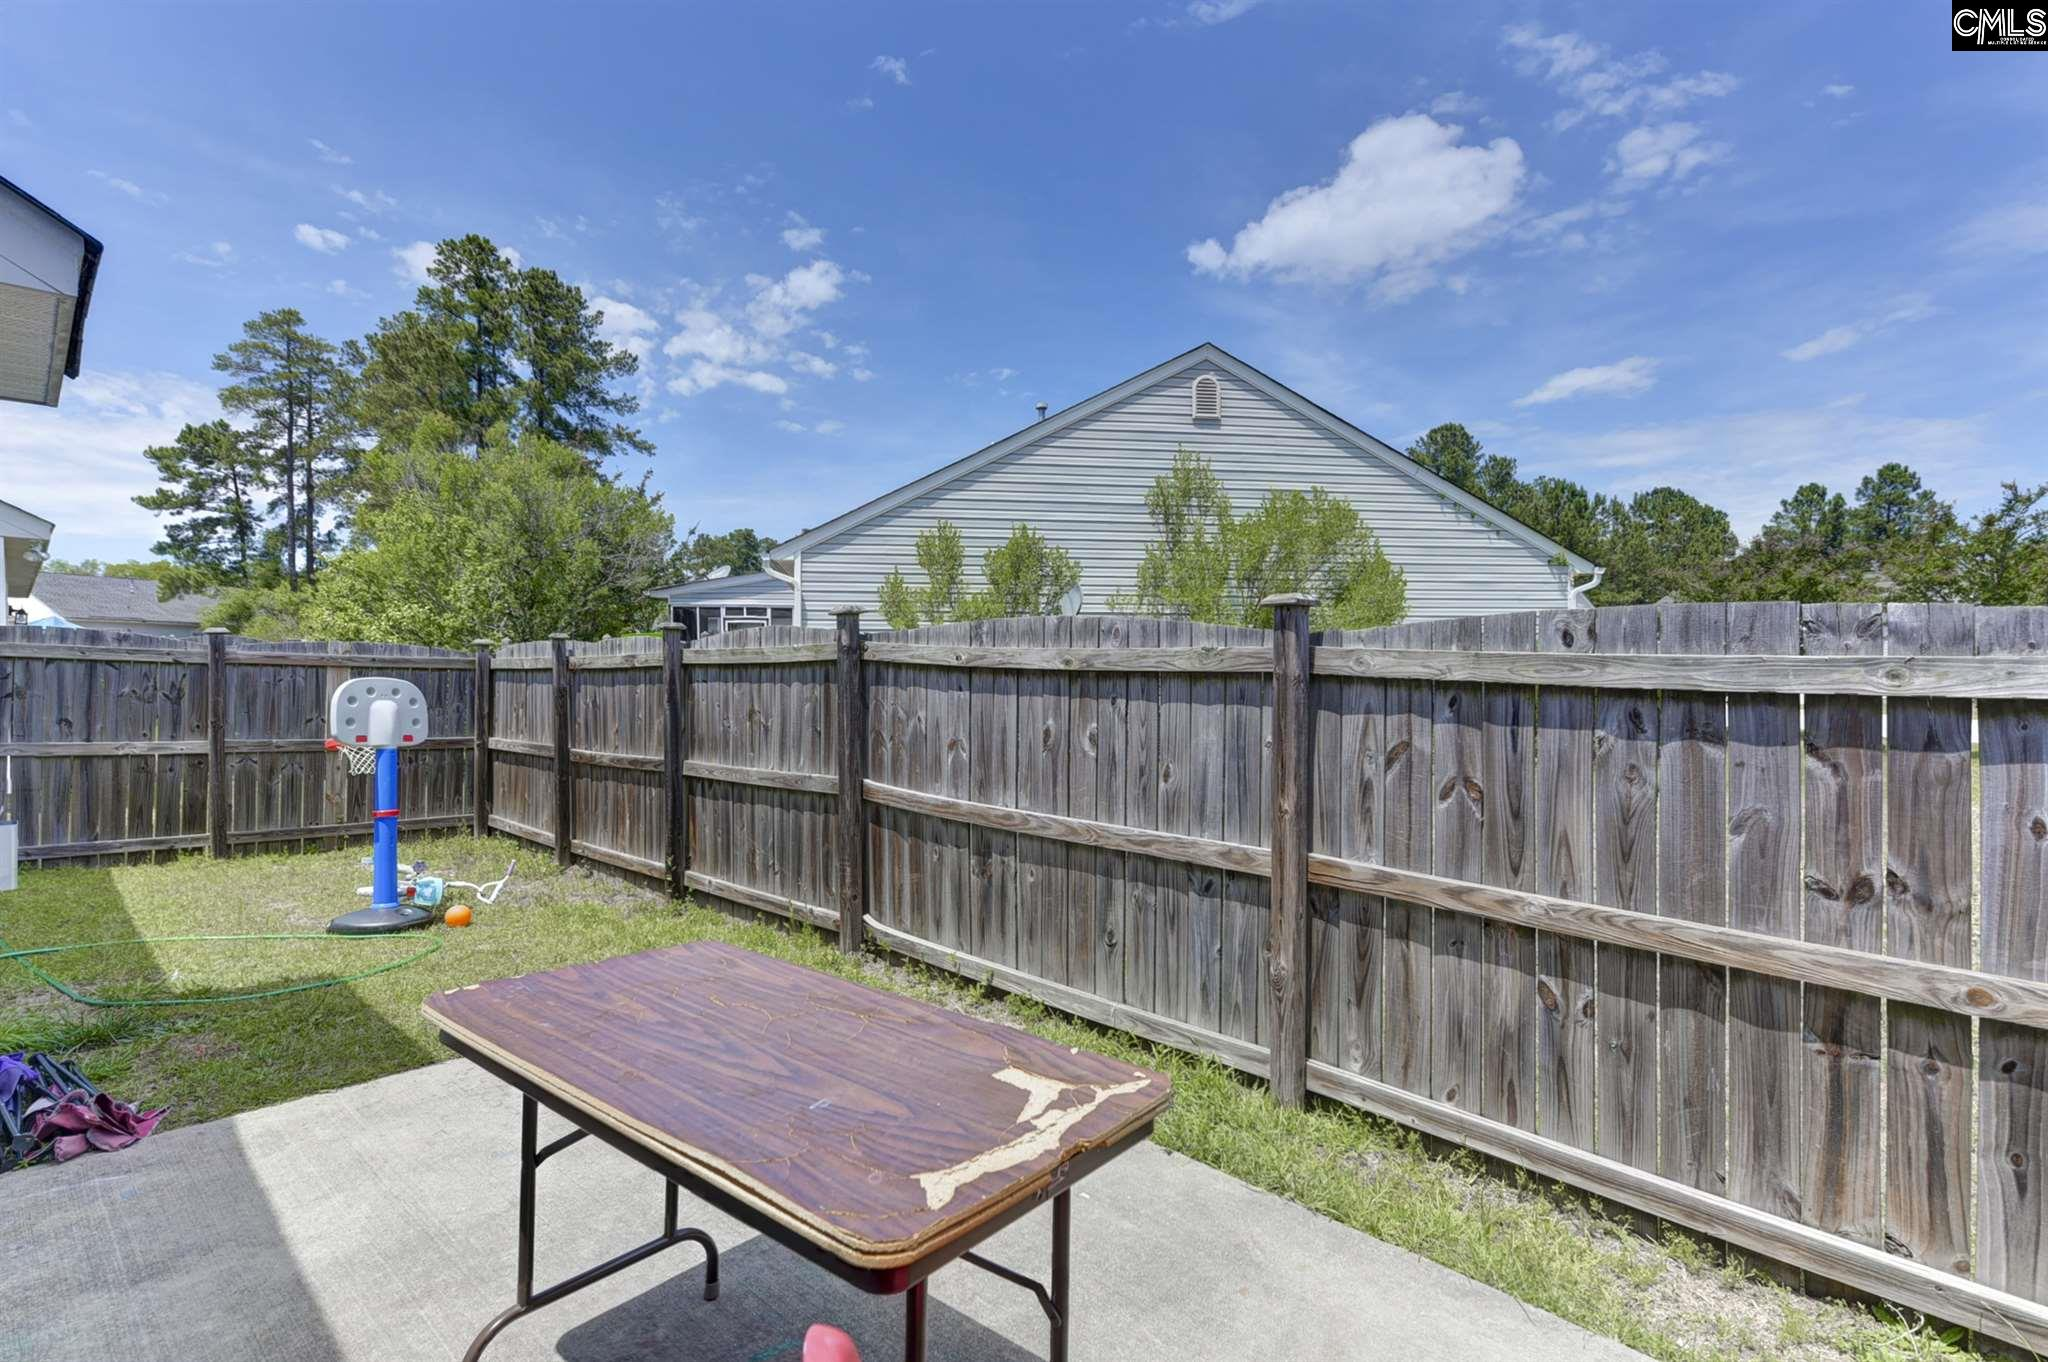 134 Weeping Willow Blythewood, SC 29016